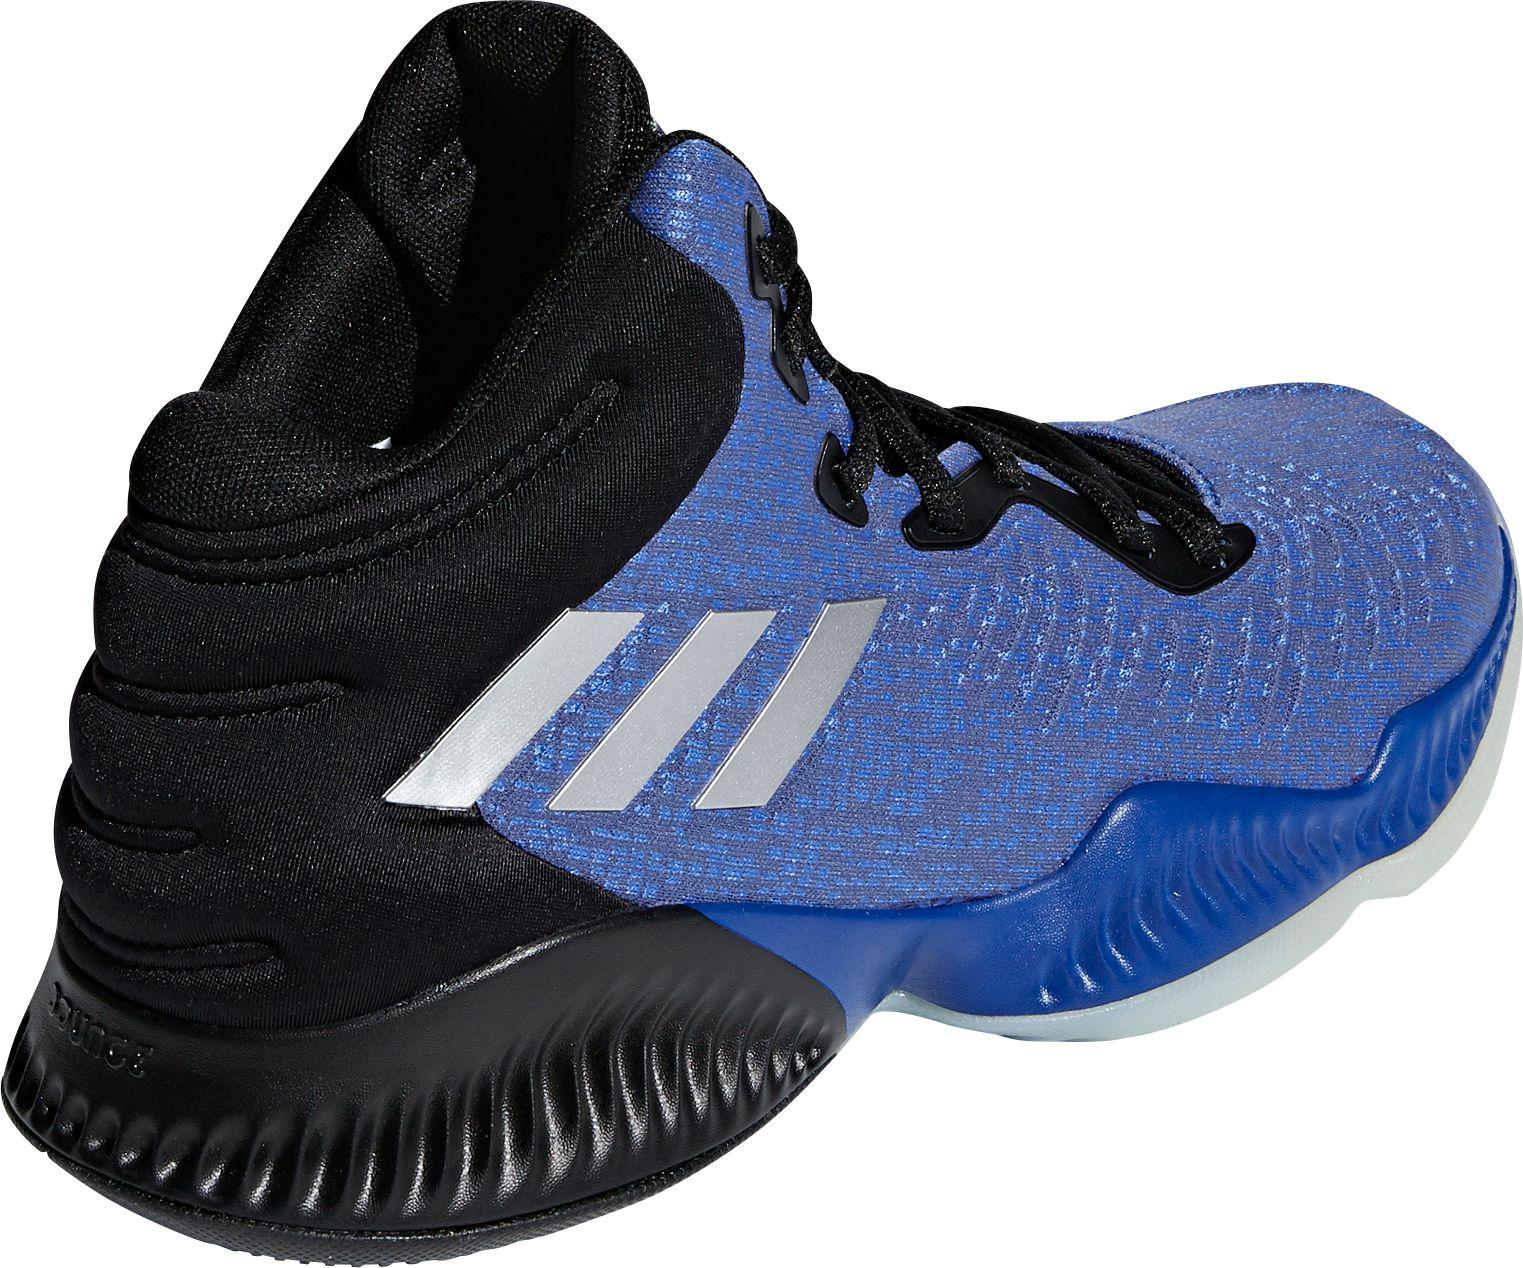 433b2ba171 ... new arrival 8ee6e f3c76 Adidas - Blue Mad Bounce 2018 Basketball Shoes  for Men - Lyst